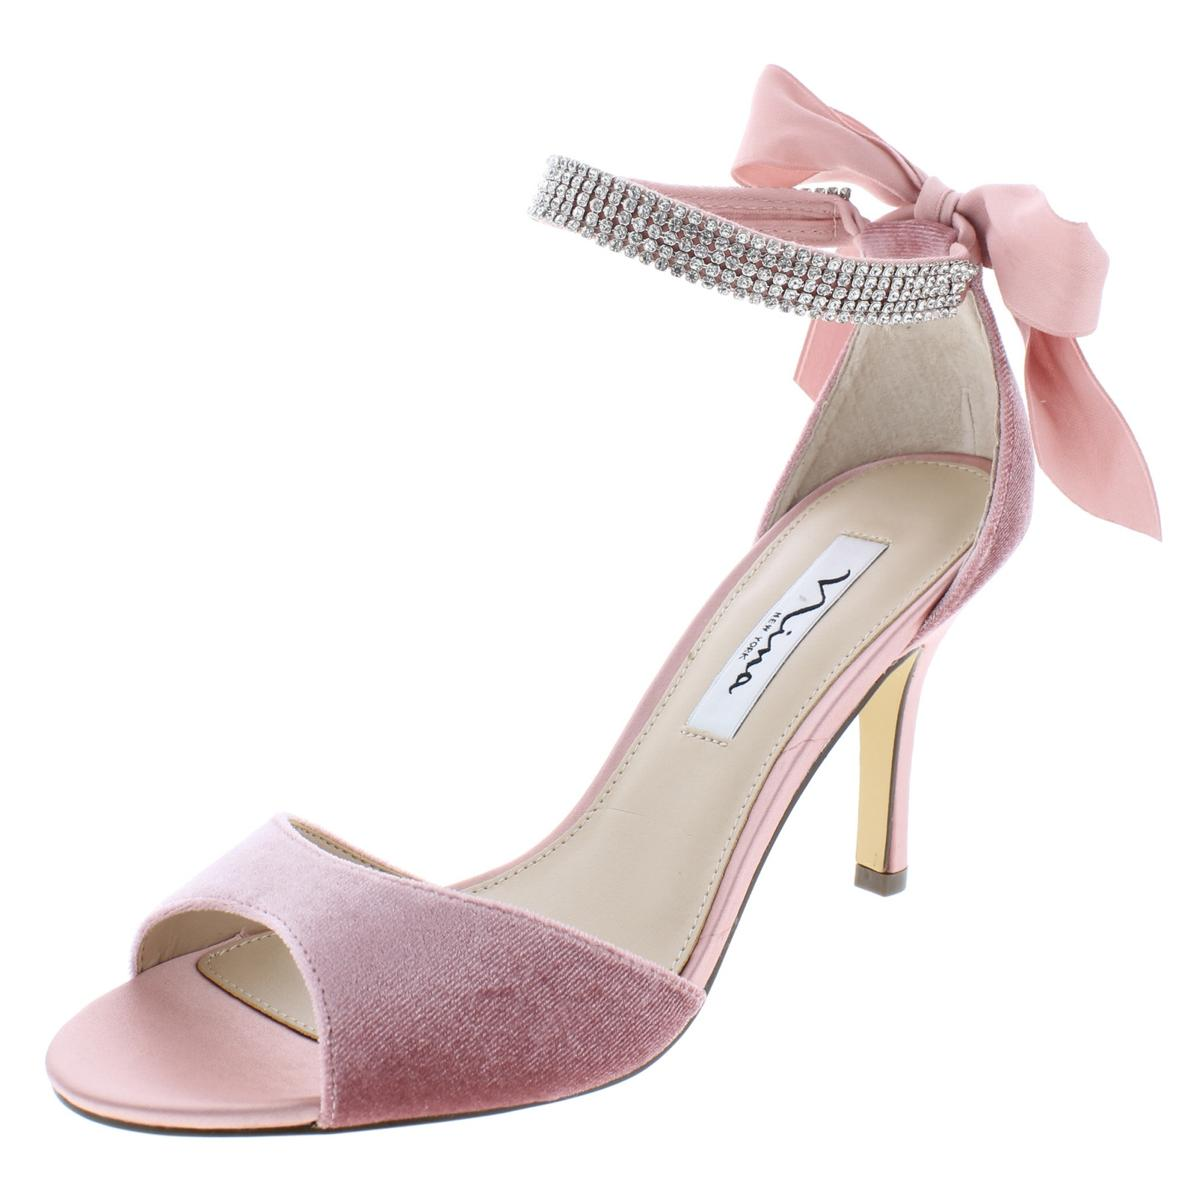 Nina-Womens-Vinnie-Pink-Satin-Evening-Heels-Shoes-8-5-Medium-B-M-BHFO-9996 thumbnail 1